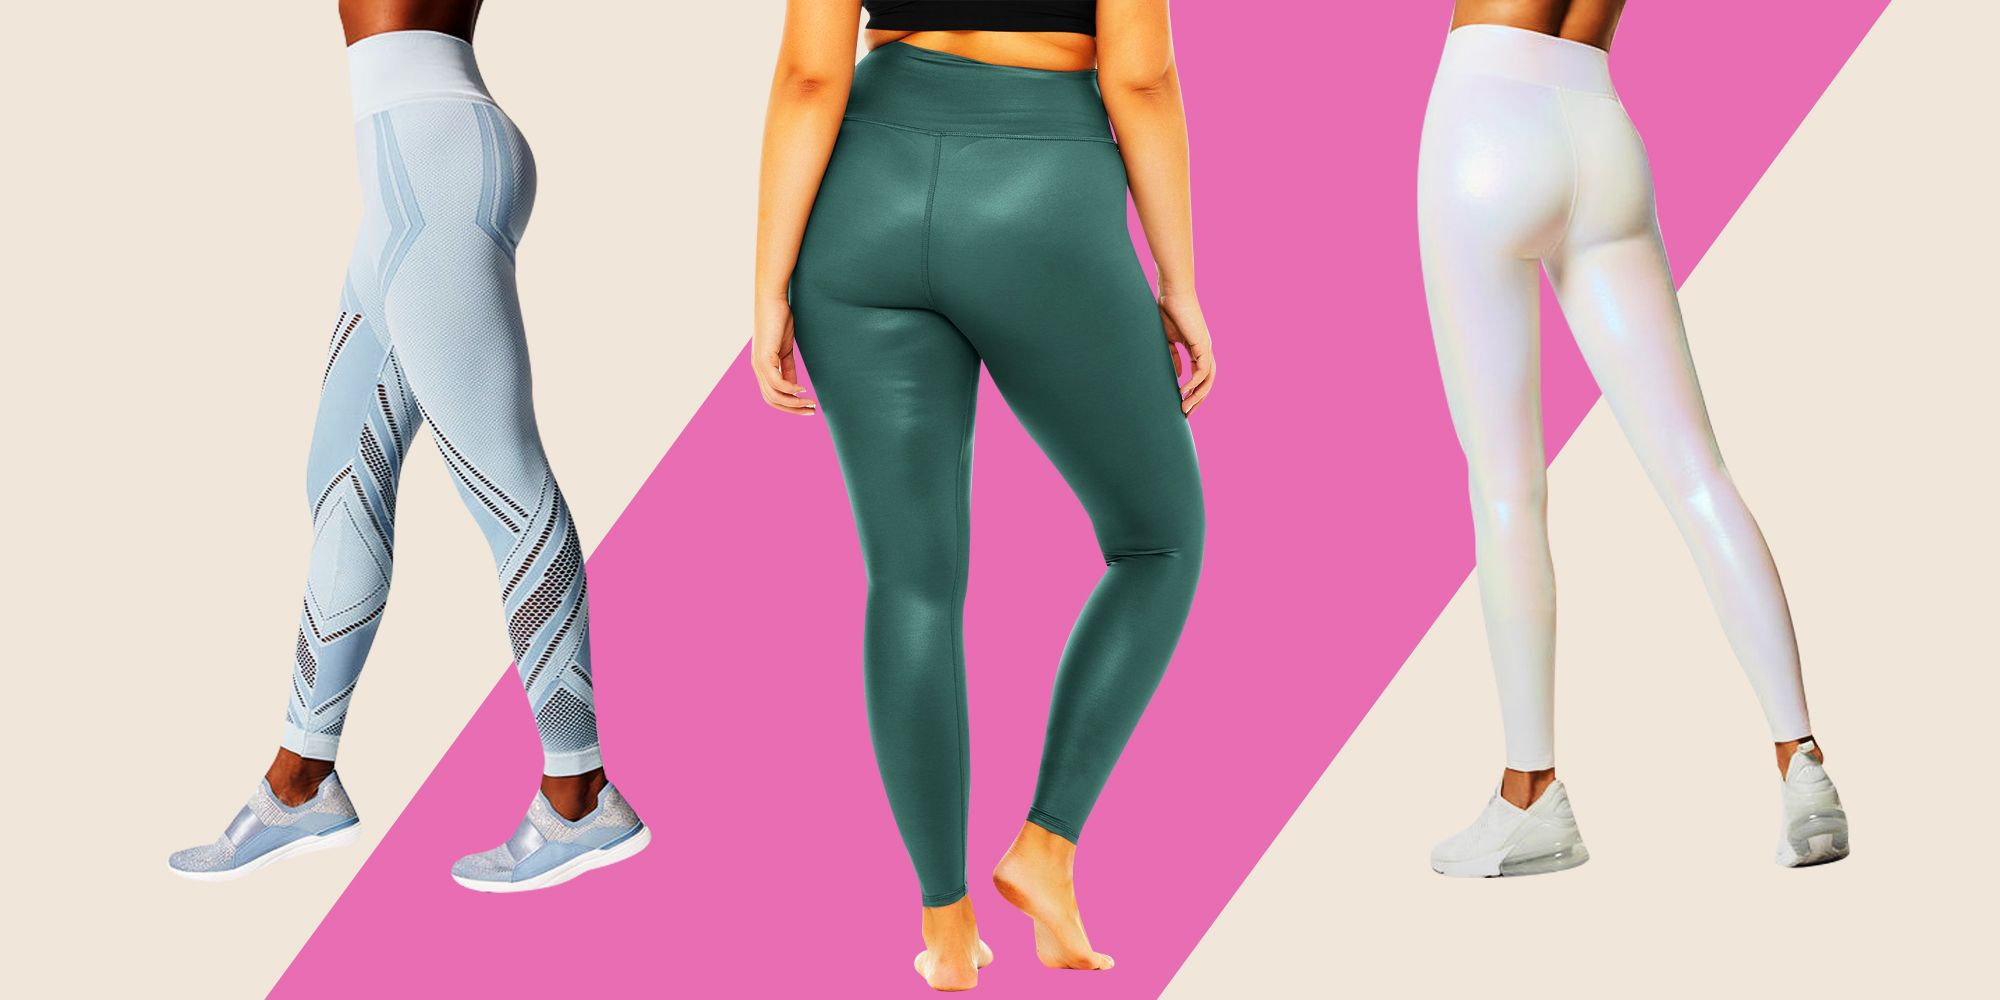 771cf30bf03bf You Need These 10 Insane Pairs of Butt-Sculpting Leggings